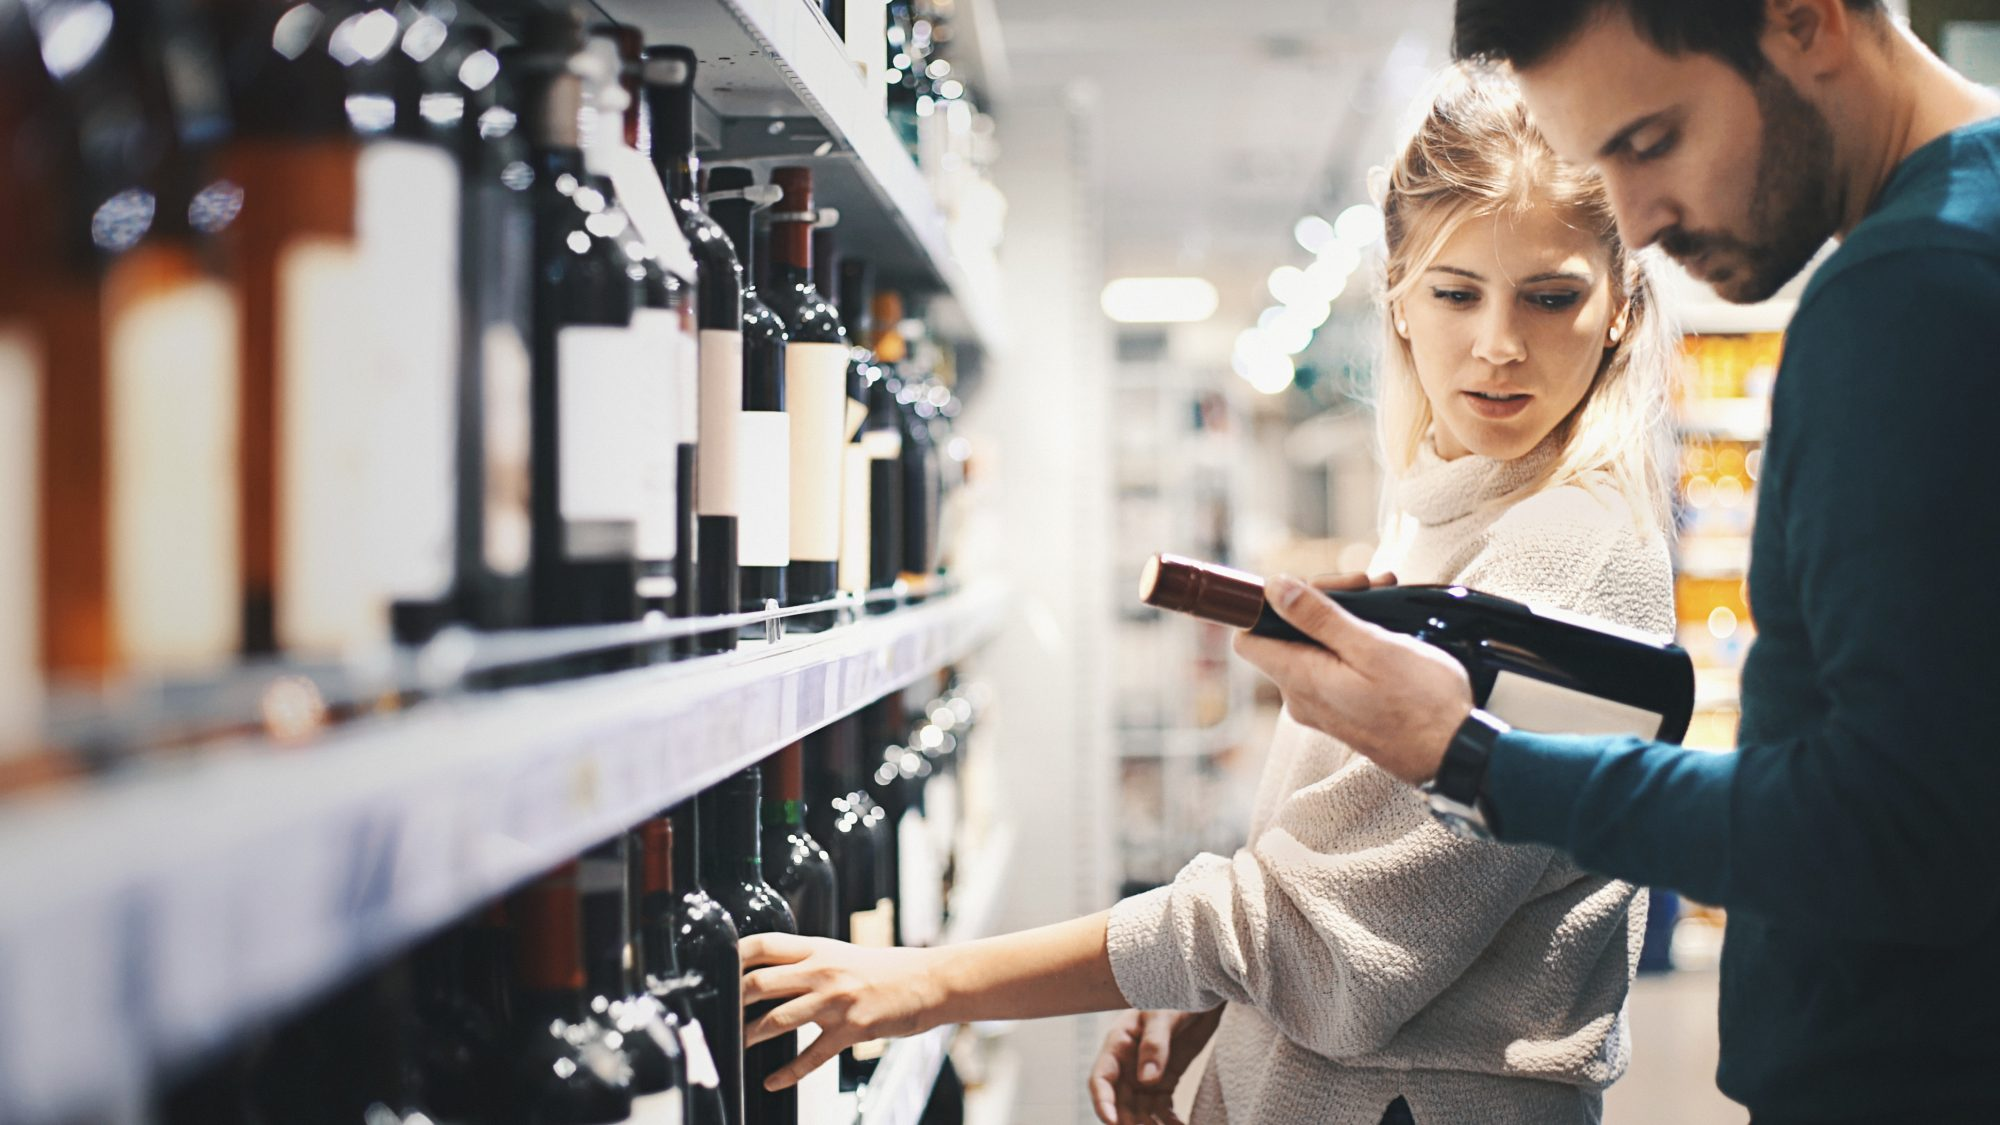 022020_Getty wine shopping image